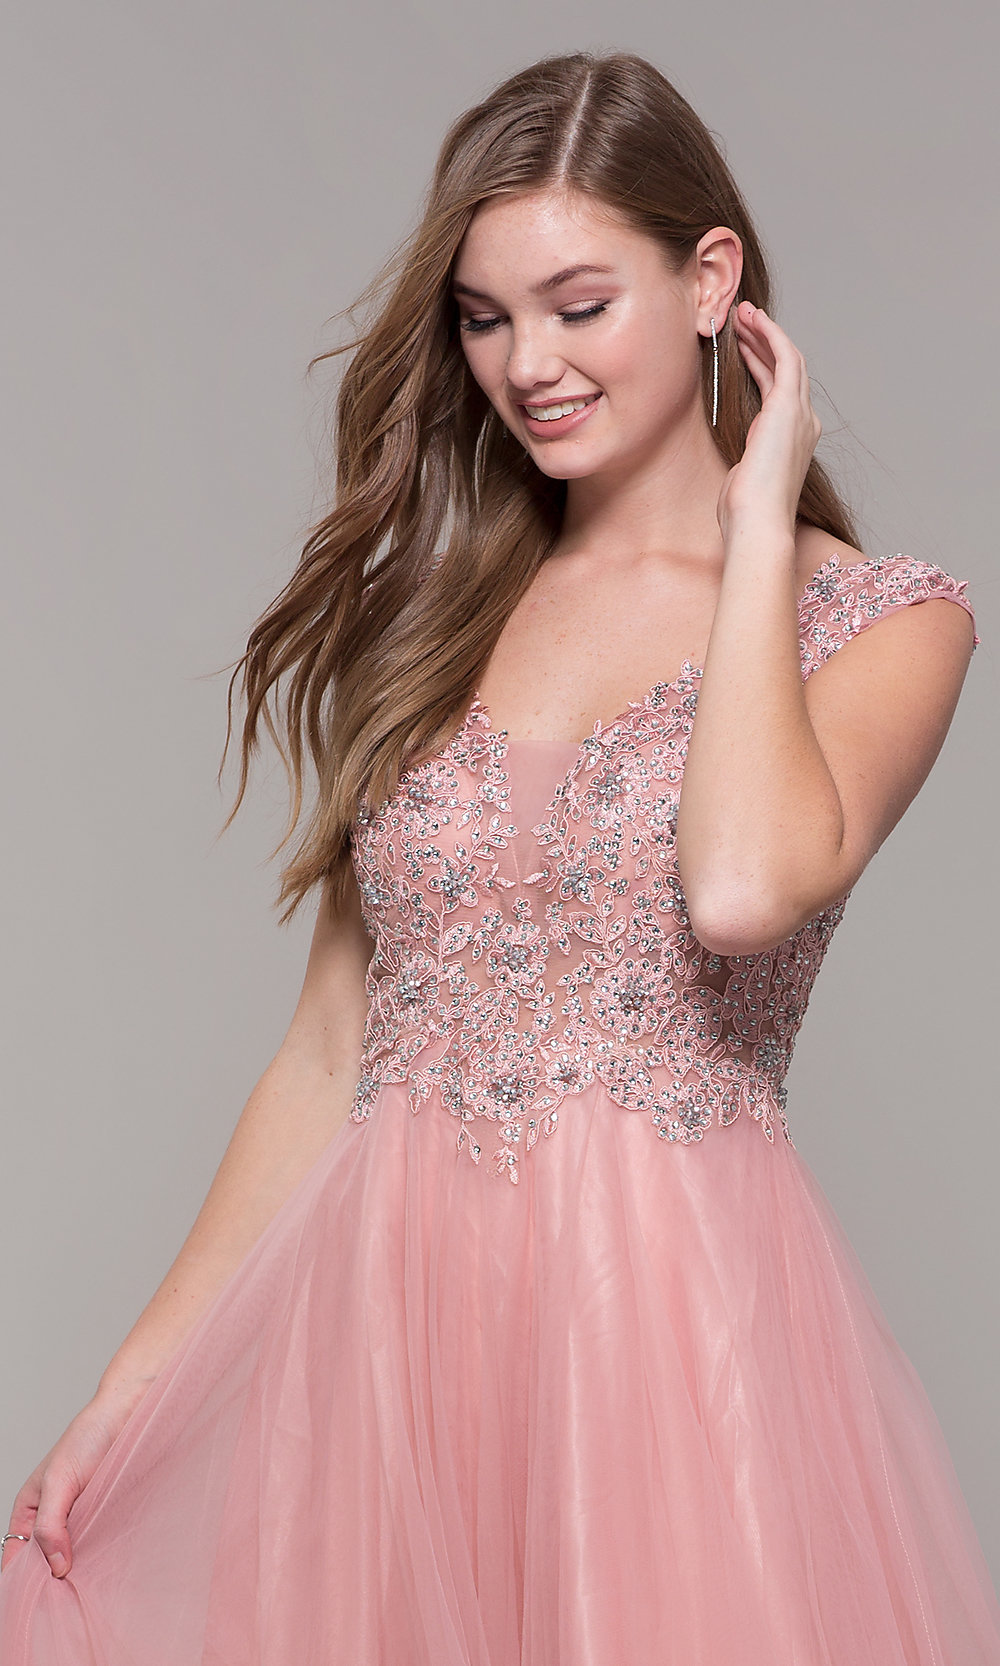 5b26949cff062 ... long tulle prom dress with beaded bodice. Style: JT. Tap to expand